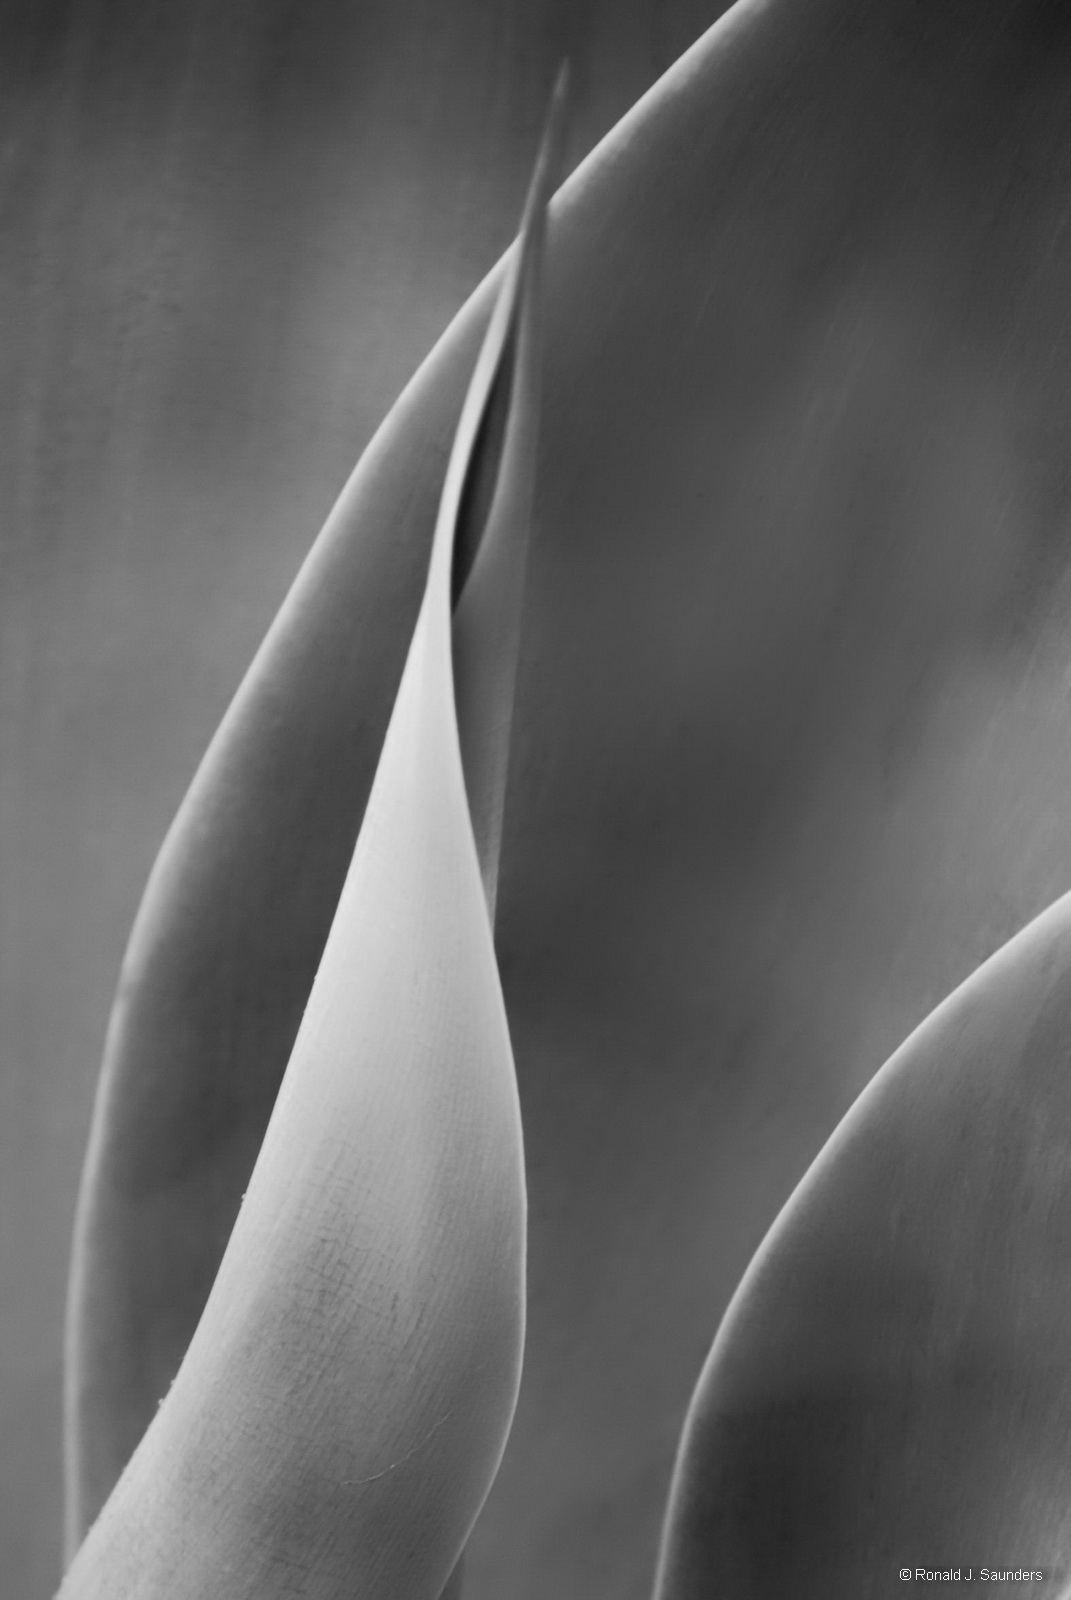 The Yucca is a delight to photograph because of its form and symmetry. The key is to find clean and unmarked leaves. Either color...